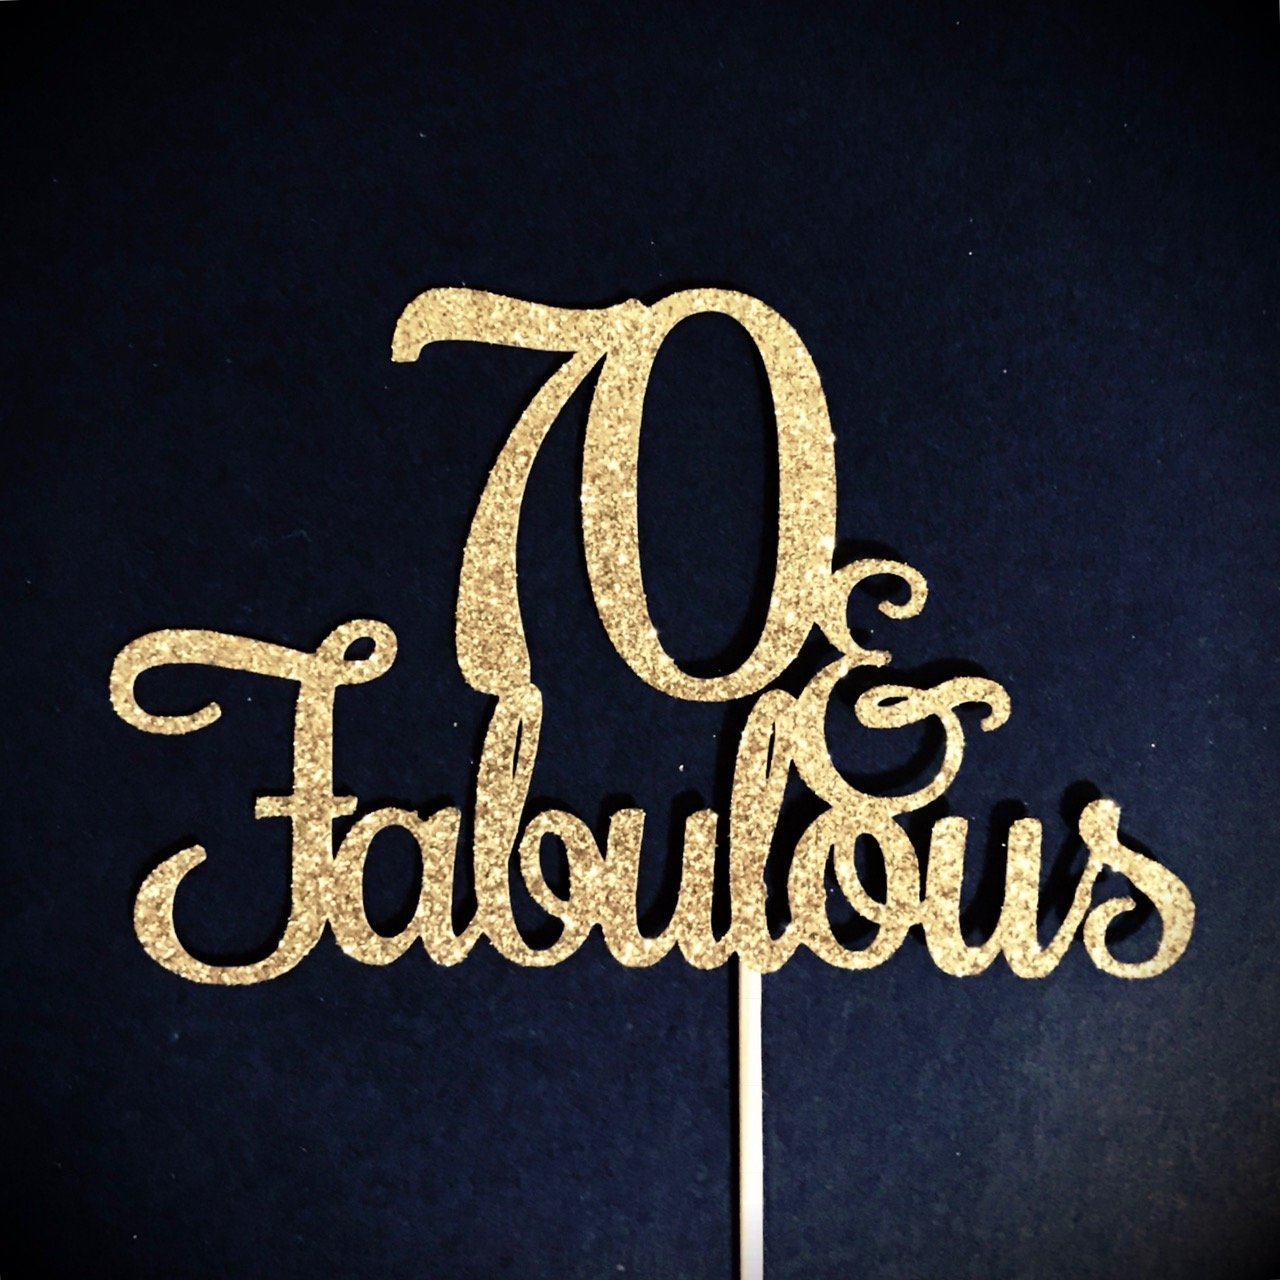 70 and Fabulous Cake Topper, Glitter Cake Topper, Birthday Cake Topper, 70th Birthday Party, Happy 70th, Seventy Birthday and Fabulous, 70 Cake Topper